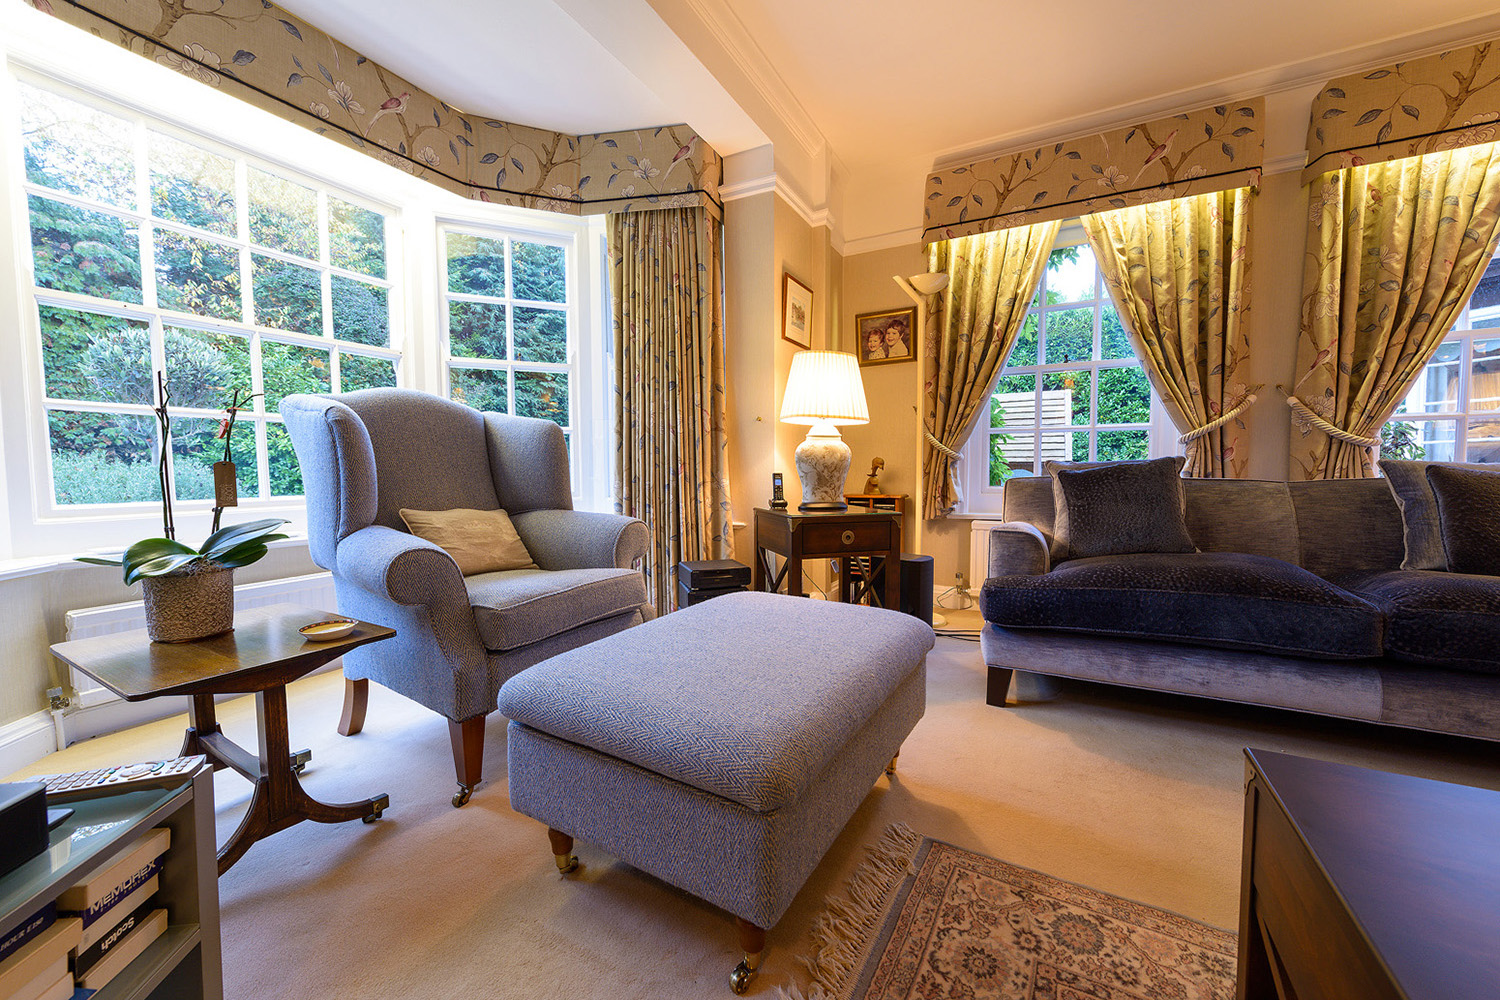 Design Box London - Interior Design - Beaconsfield Country House HP9 - Sitting Room